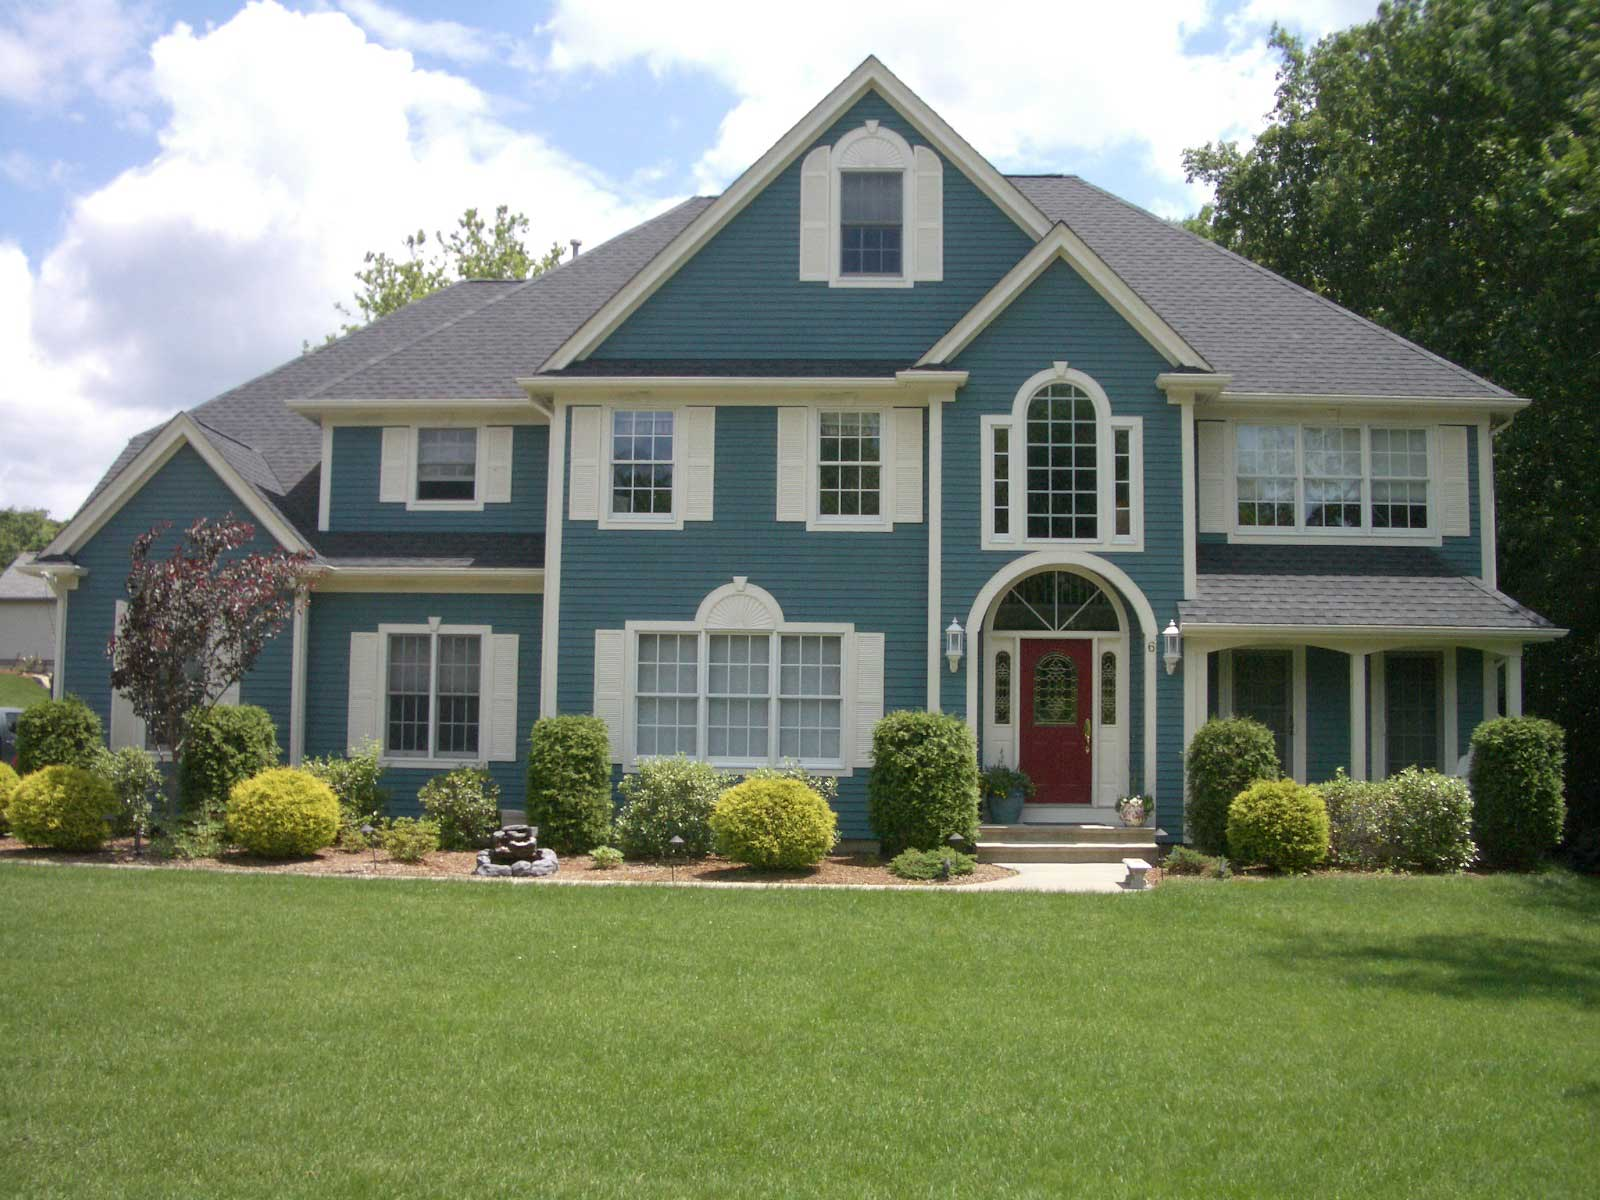 Outstanding Blue Exterior House Paint Colors 1600 x 1200 · 196 kB · jpeg